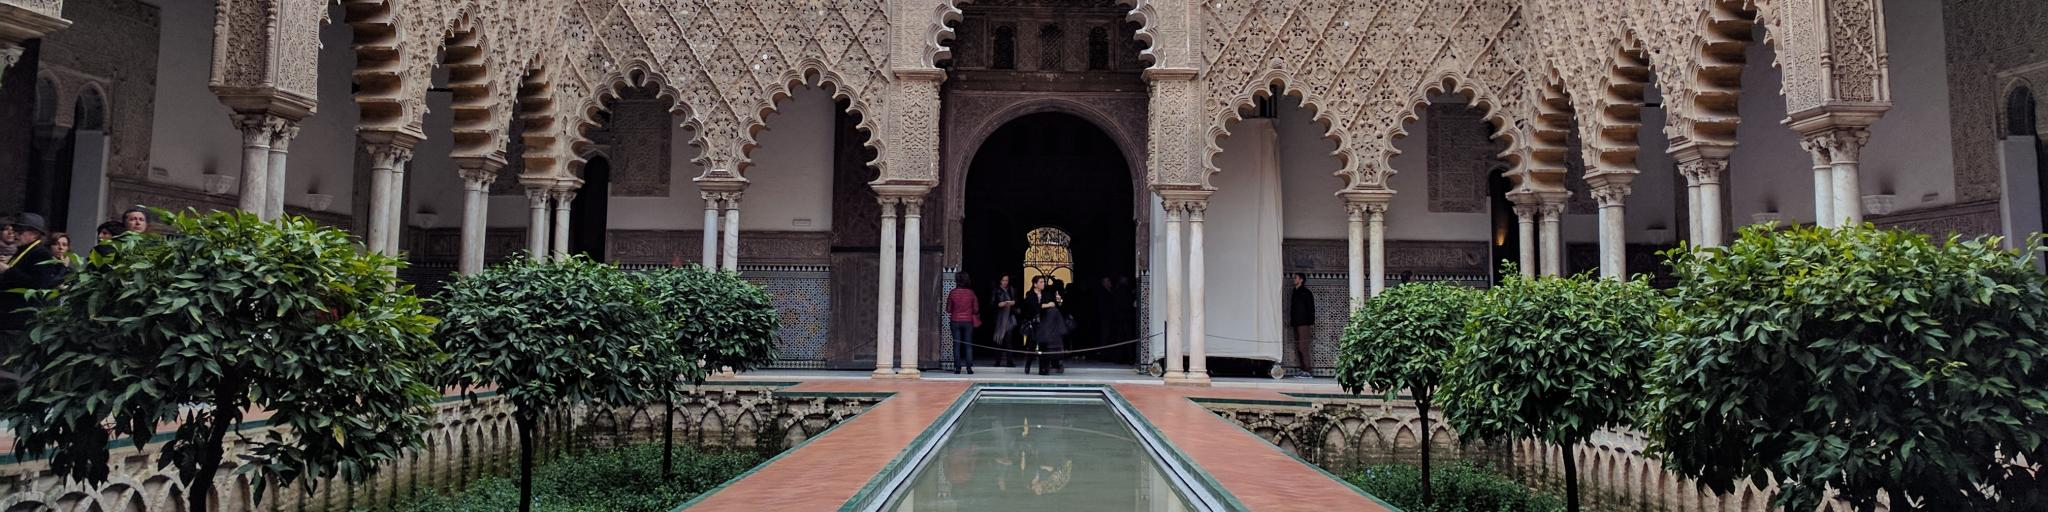 Islamic architecture surrounds a central courtyard in Seville's Real Alcazar